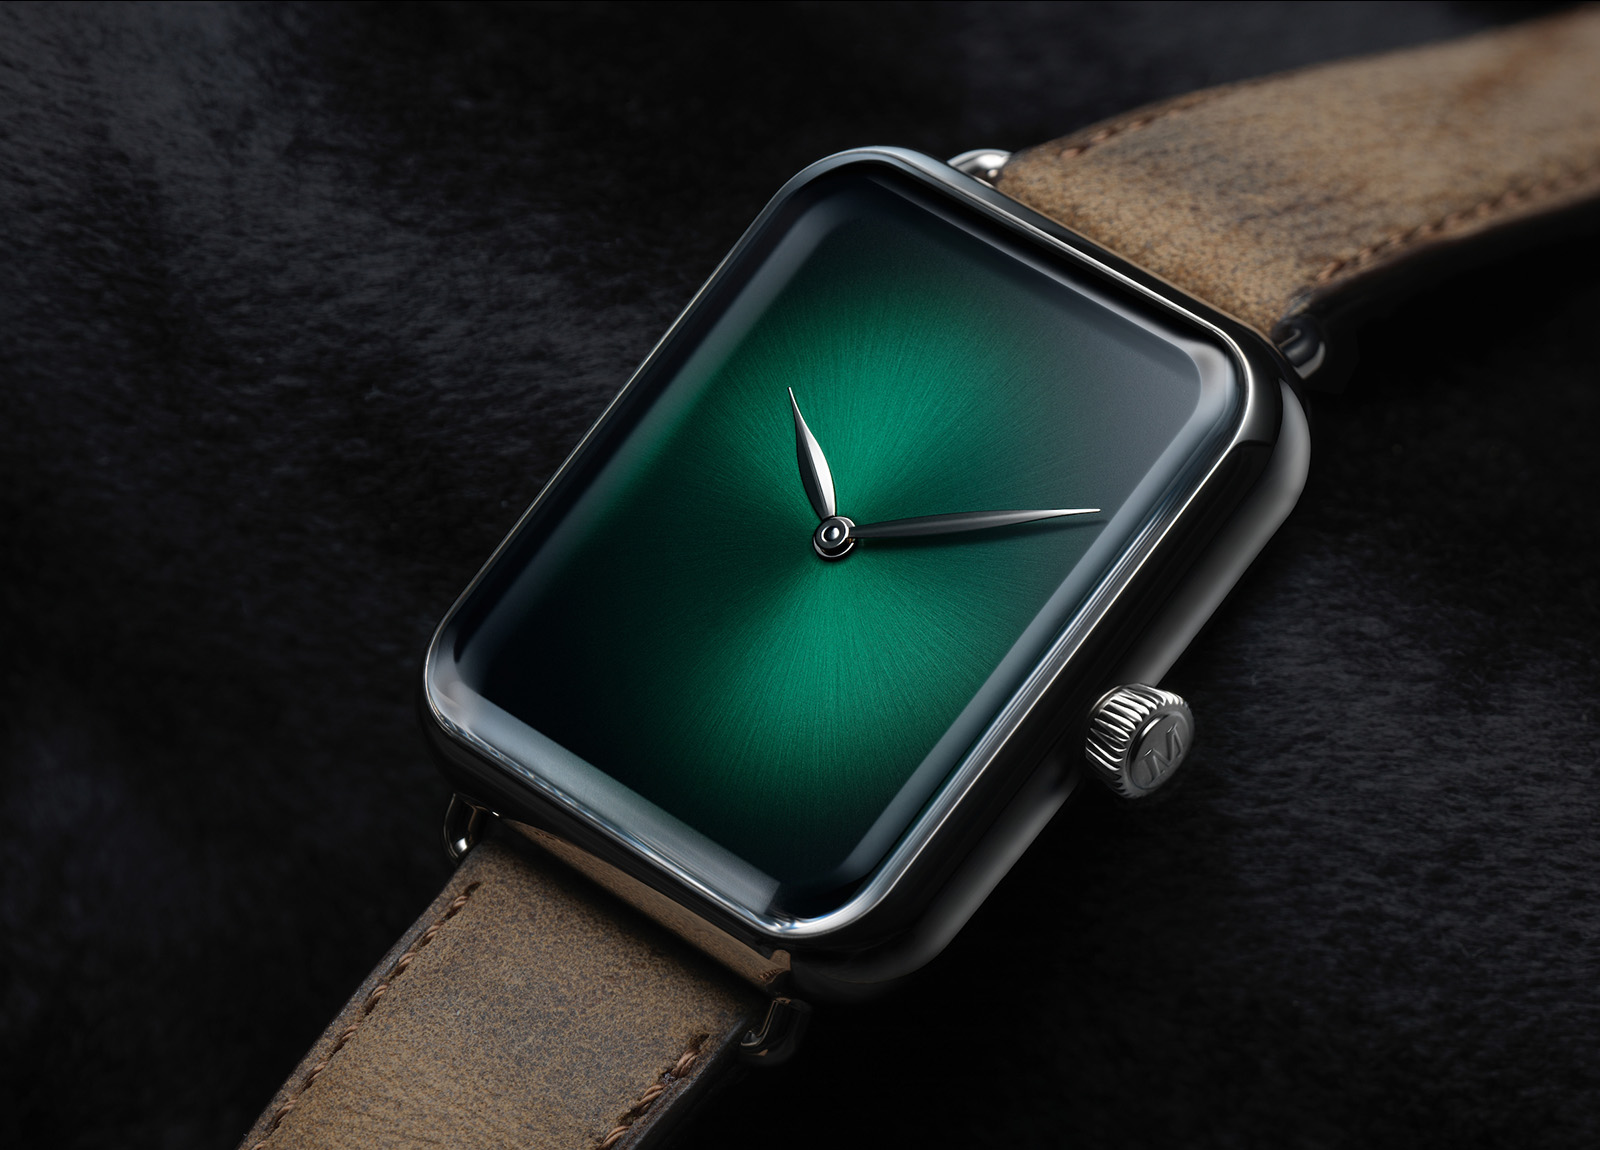 H. Moser Swiss Alp Watch Cosmic Green